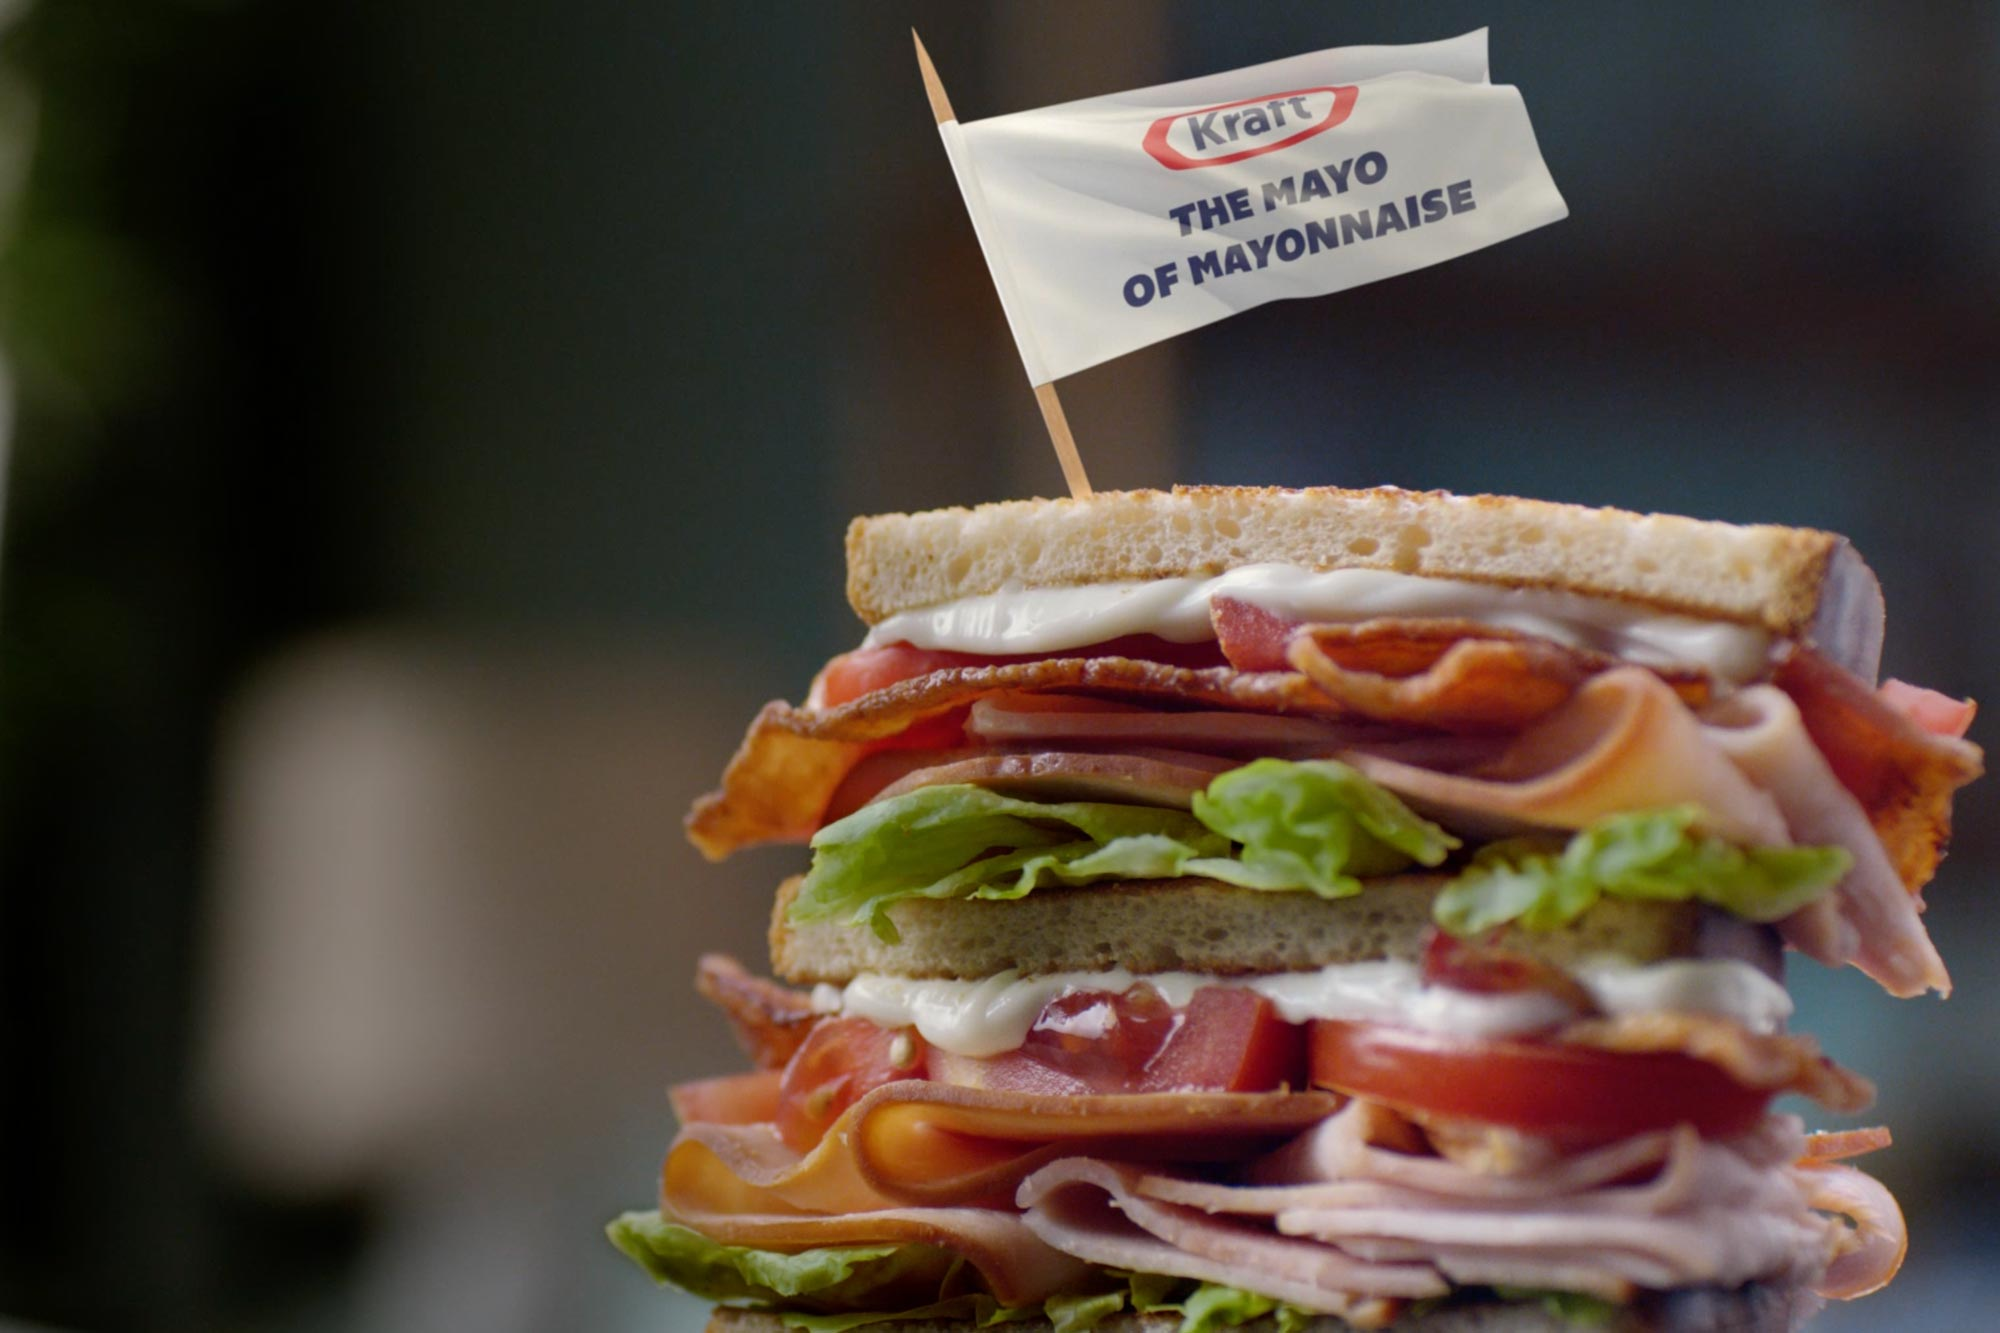 Kraft Mayo lays it on thick in its first campaign from Wieden+Kennedy NY